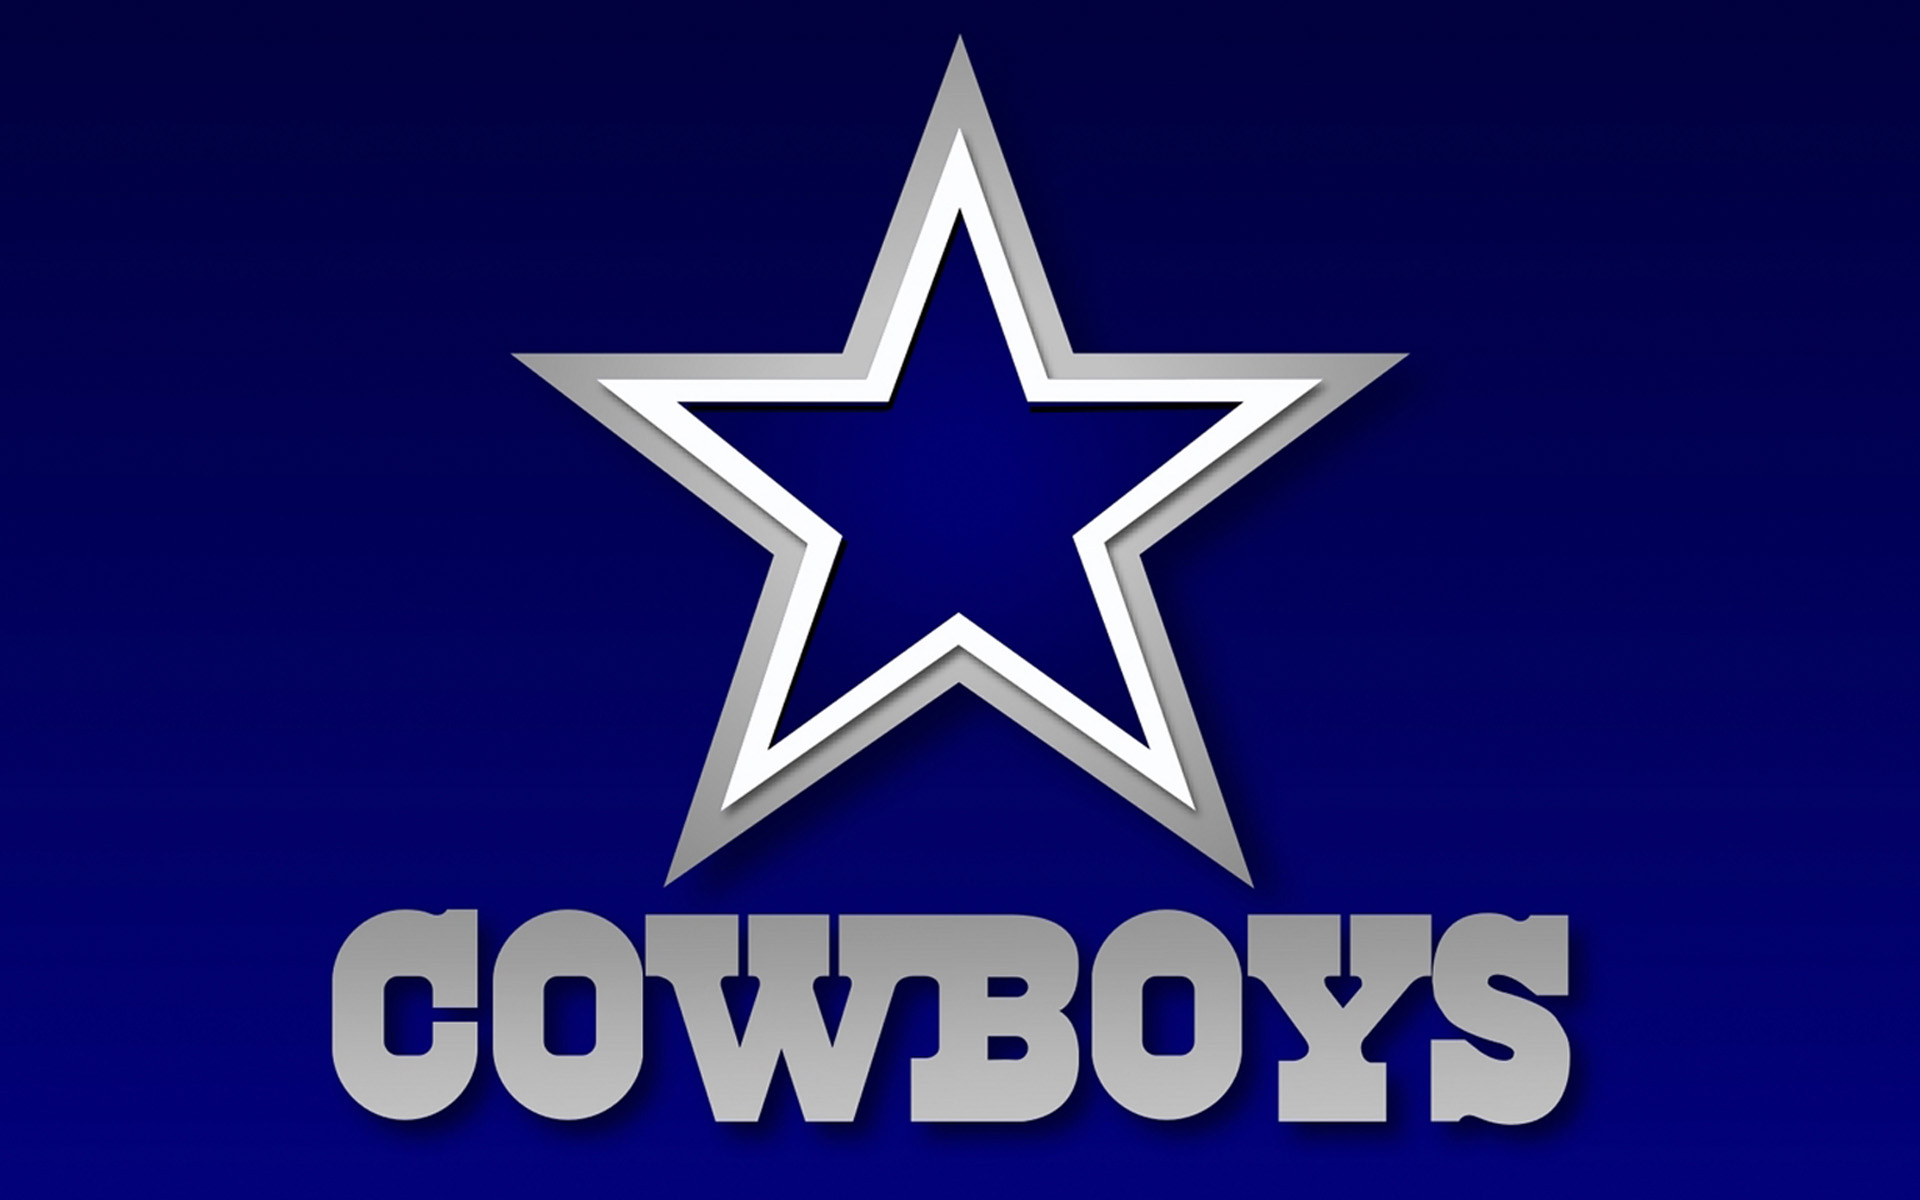 dallas-cowboys-nfl-team-logos-x-pixels-blue-198040